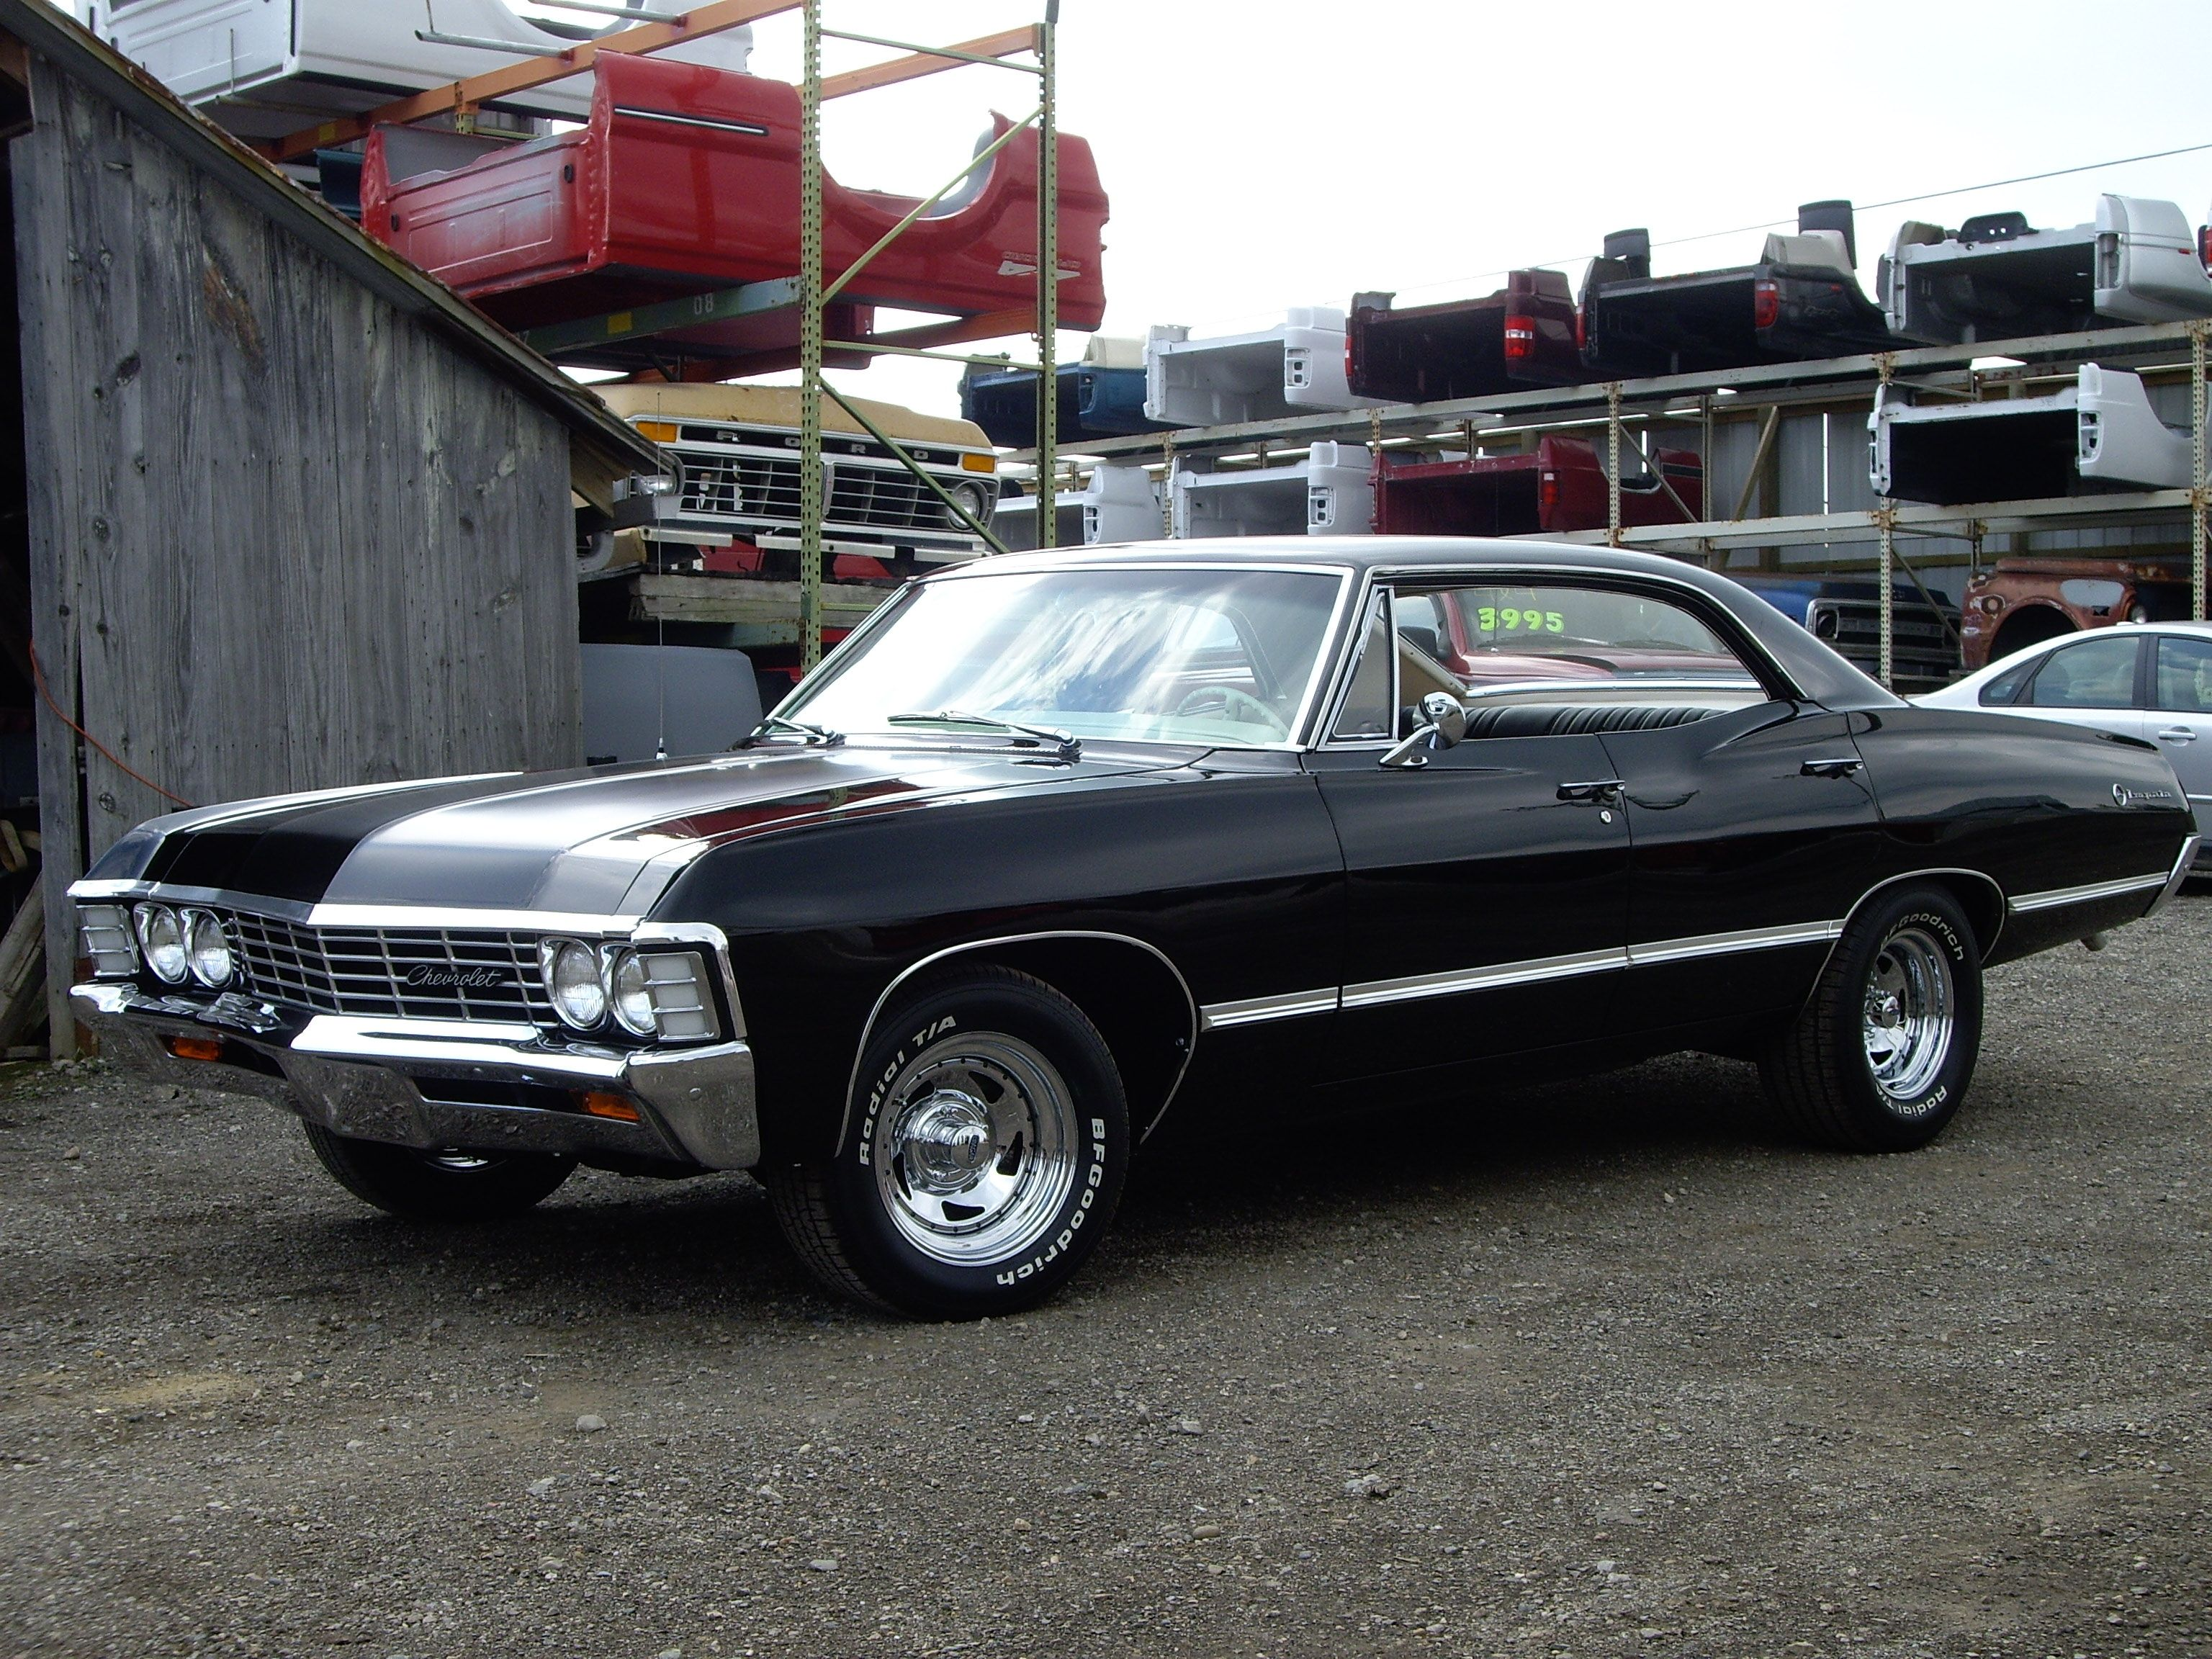 67 chevrolet impala well we can blame supernatural for getting this on my list of